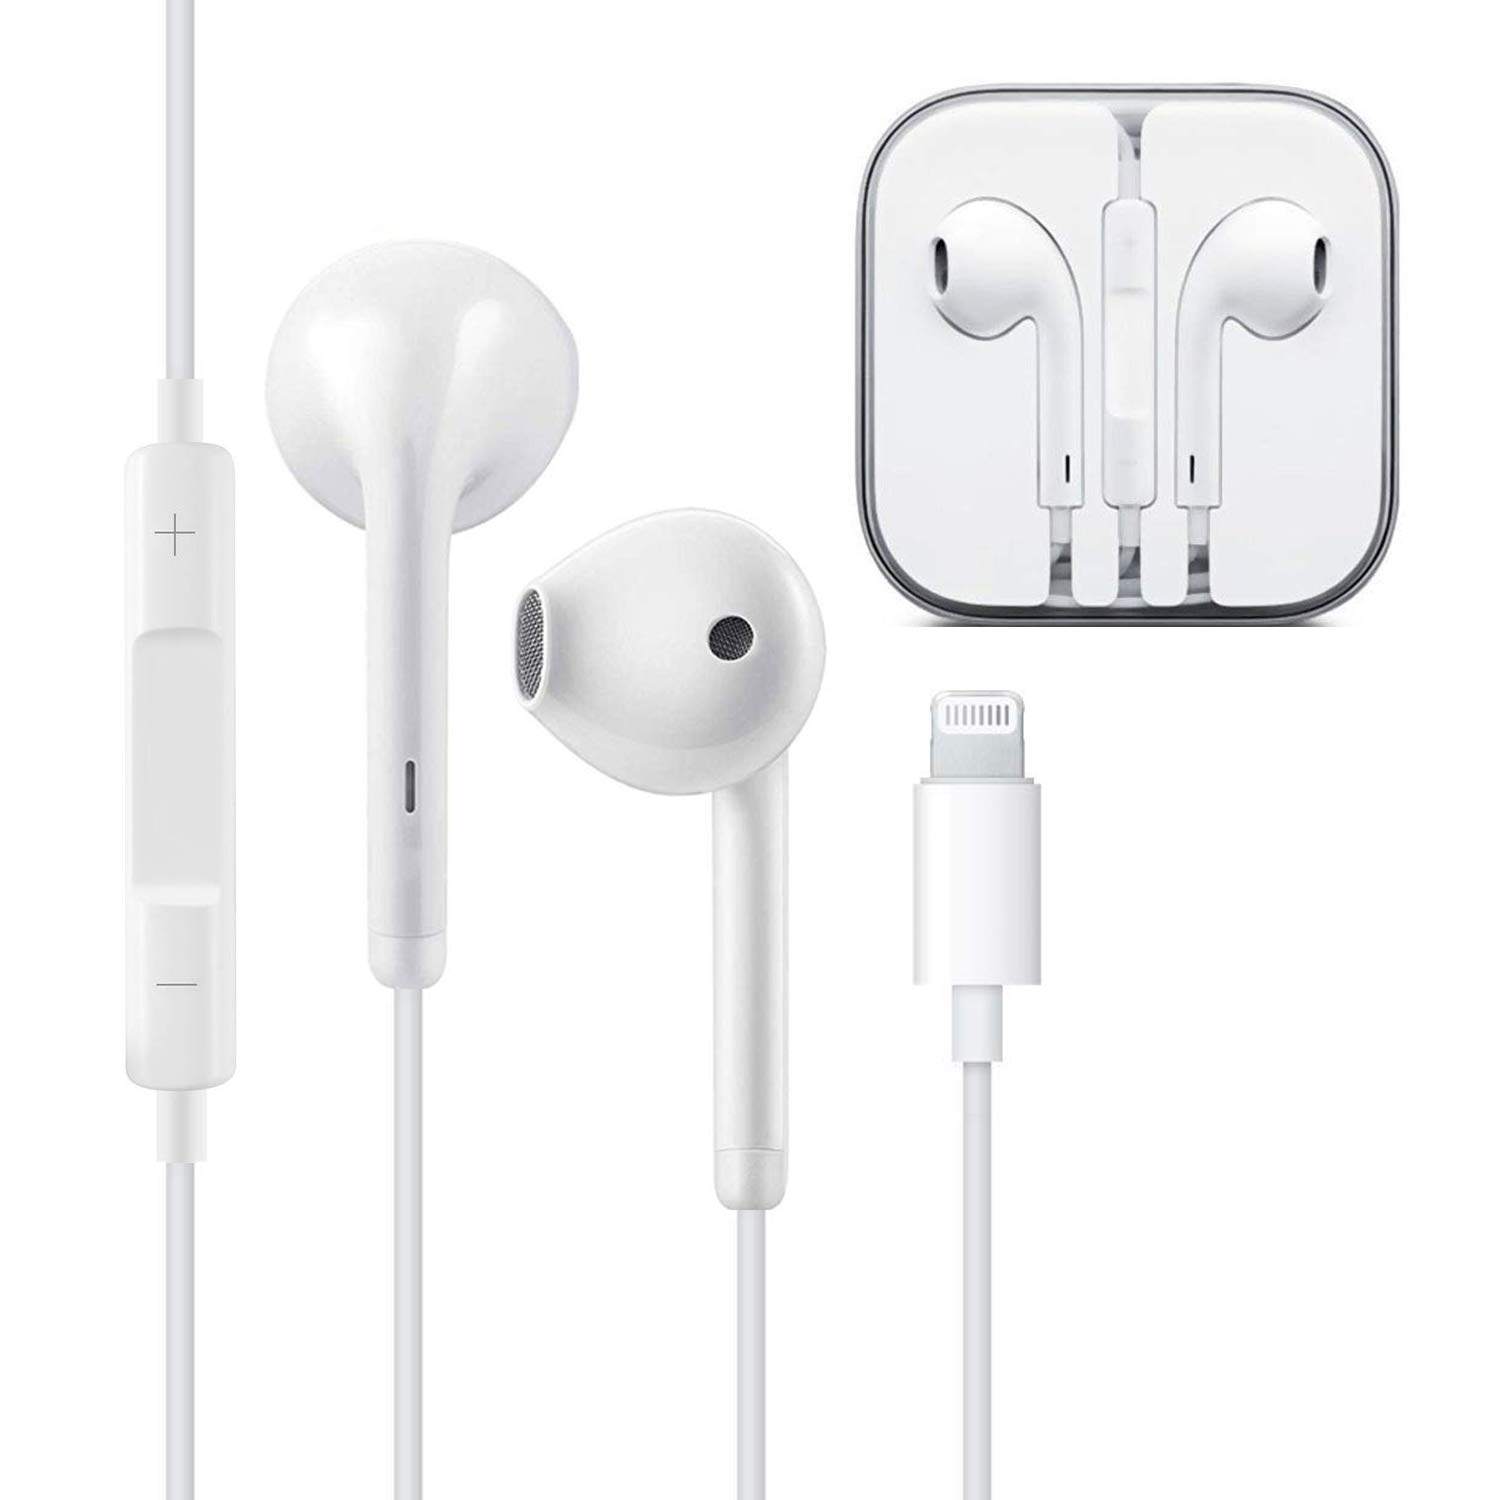 Earbuds,Microphone Earphones Stereo Headphones Noise Isolating Headset Compatible with iPhone X XS XS Max XR 7 8 Earphones 02